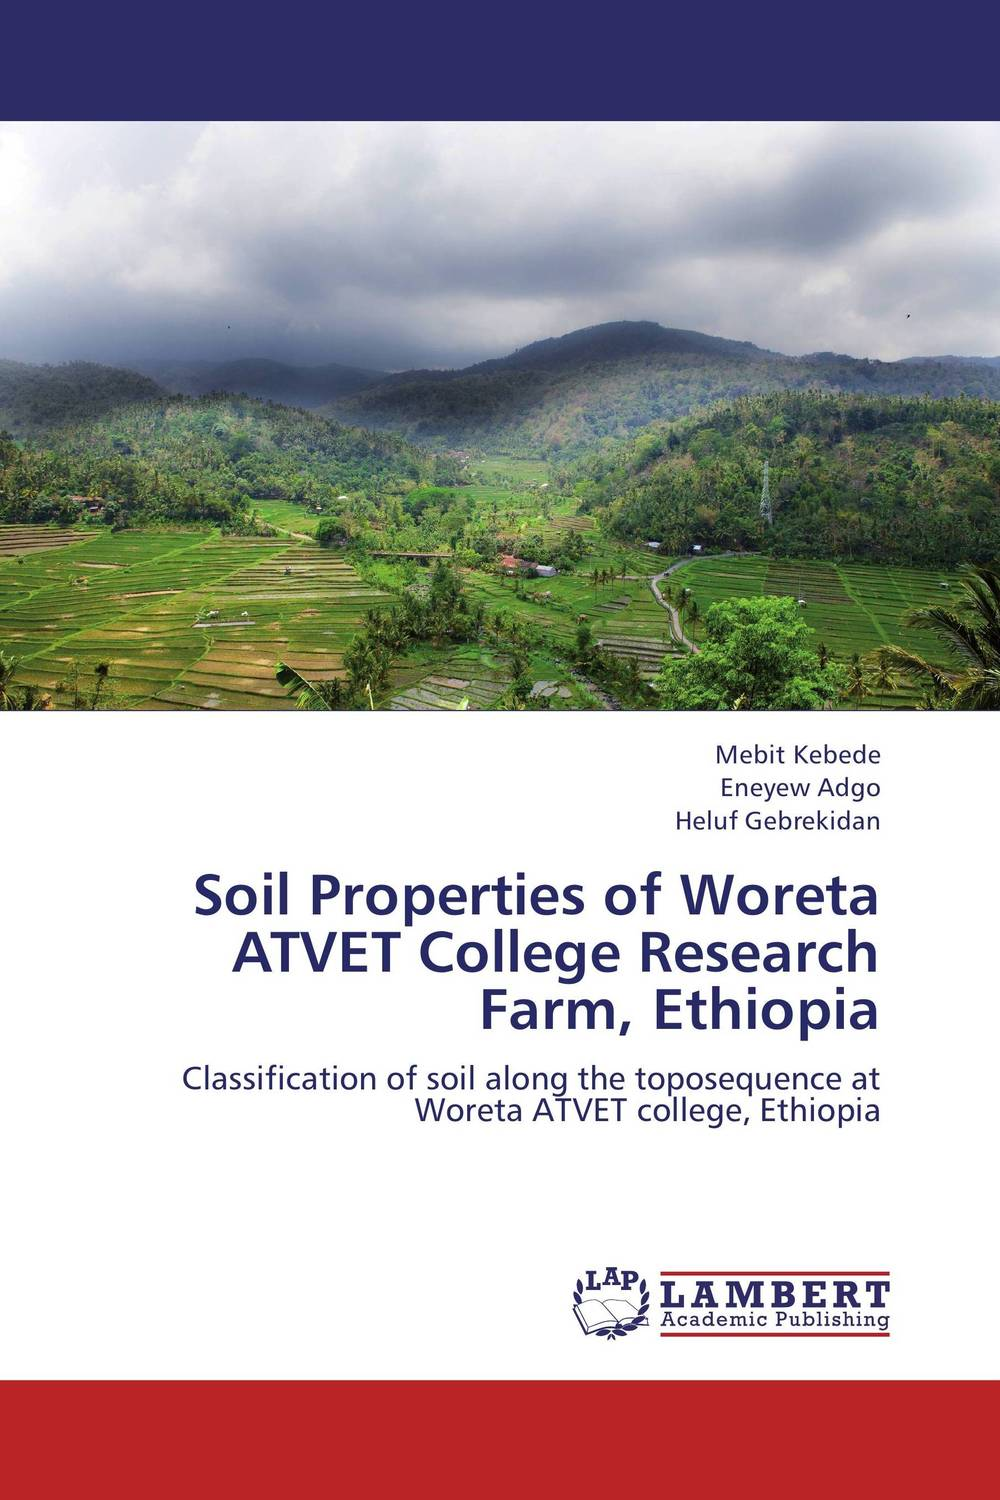 Soil Properties of Woreta ATVET College Research Farm, Ethiopia soil and land resource evaluation for village level planning